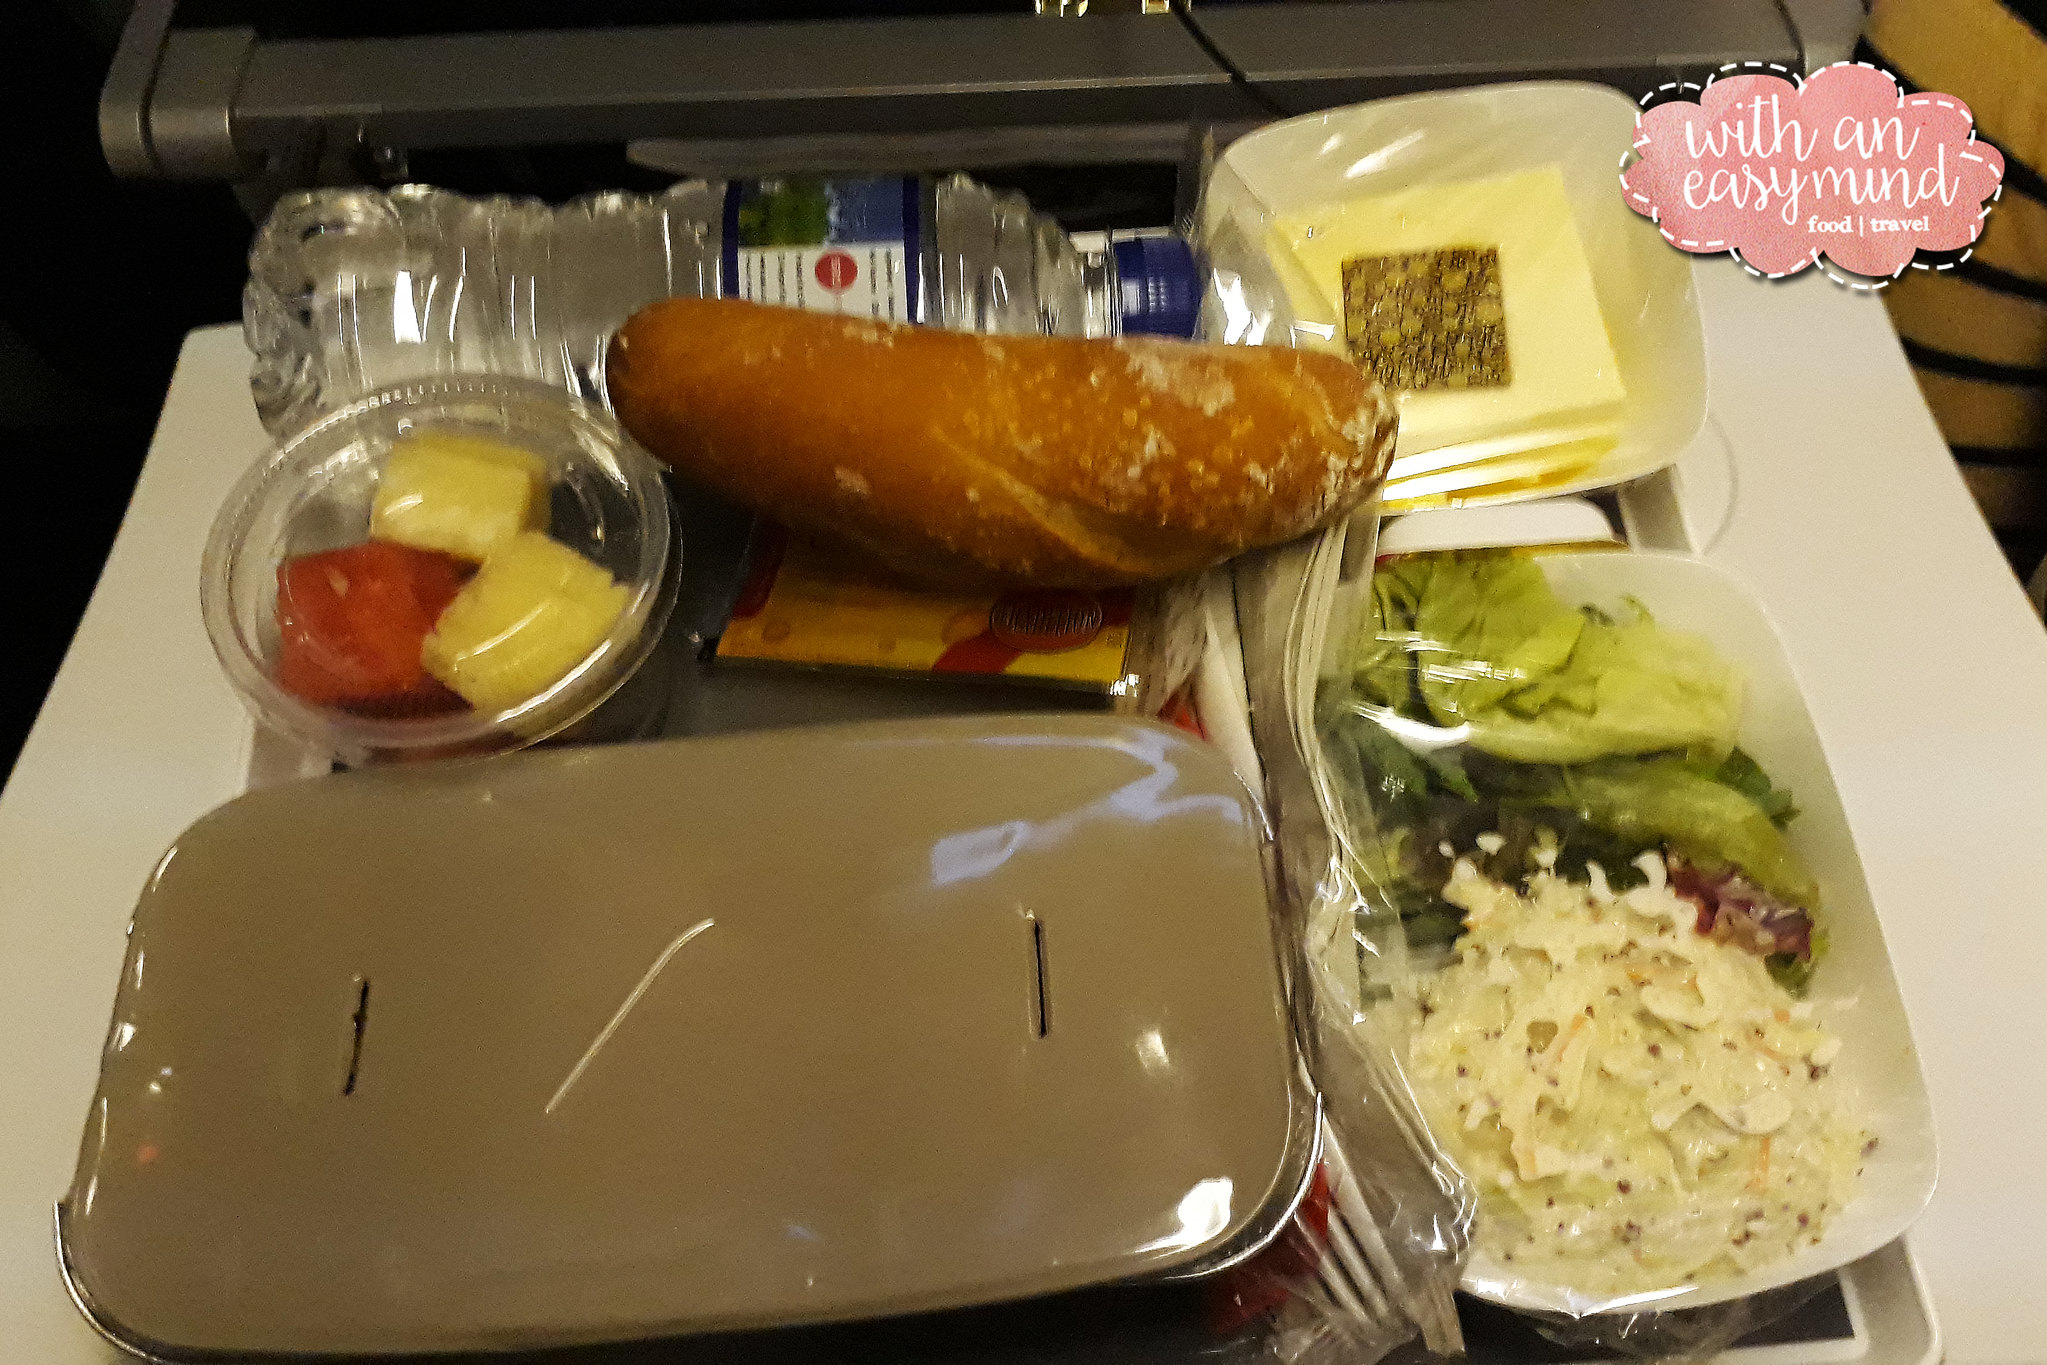 airfrance-meal-1